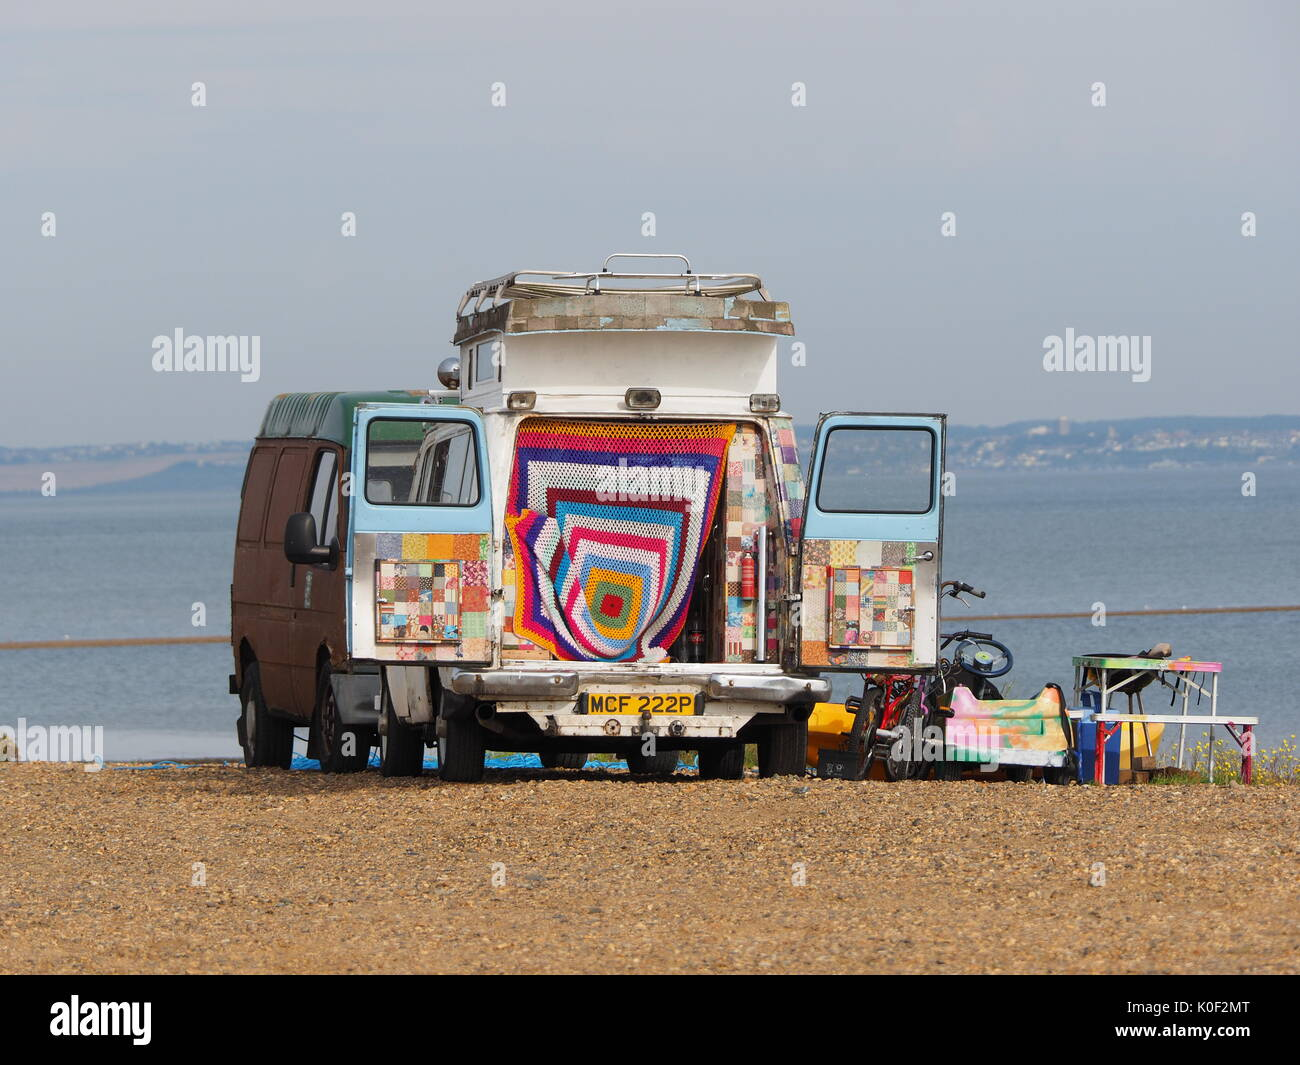 Sheerness, Kent. 23 Aug, 2017. UK Weather: a sunny and warm morning with temperatures of 23 deg c at 10am. Credit: James Bell/Alamy Live News - Stock Image